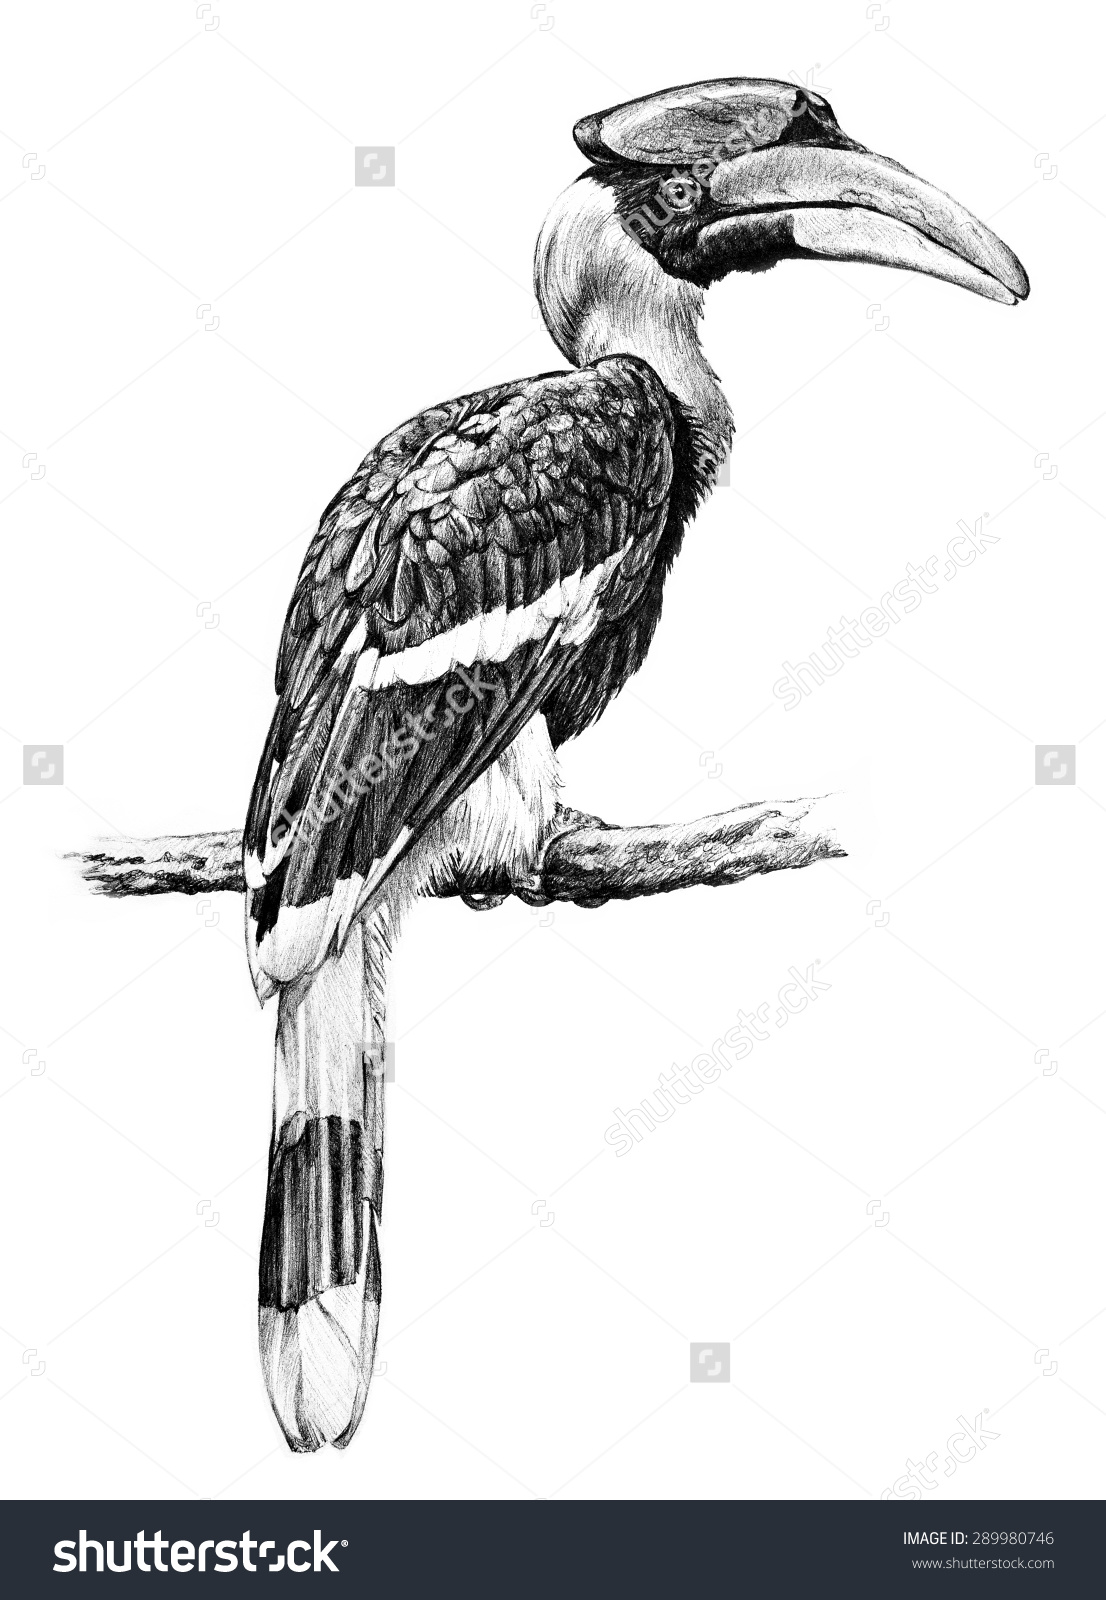 Grey Hornbill clipart #10, Download drawings